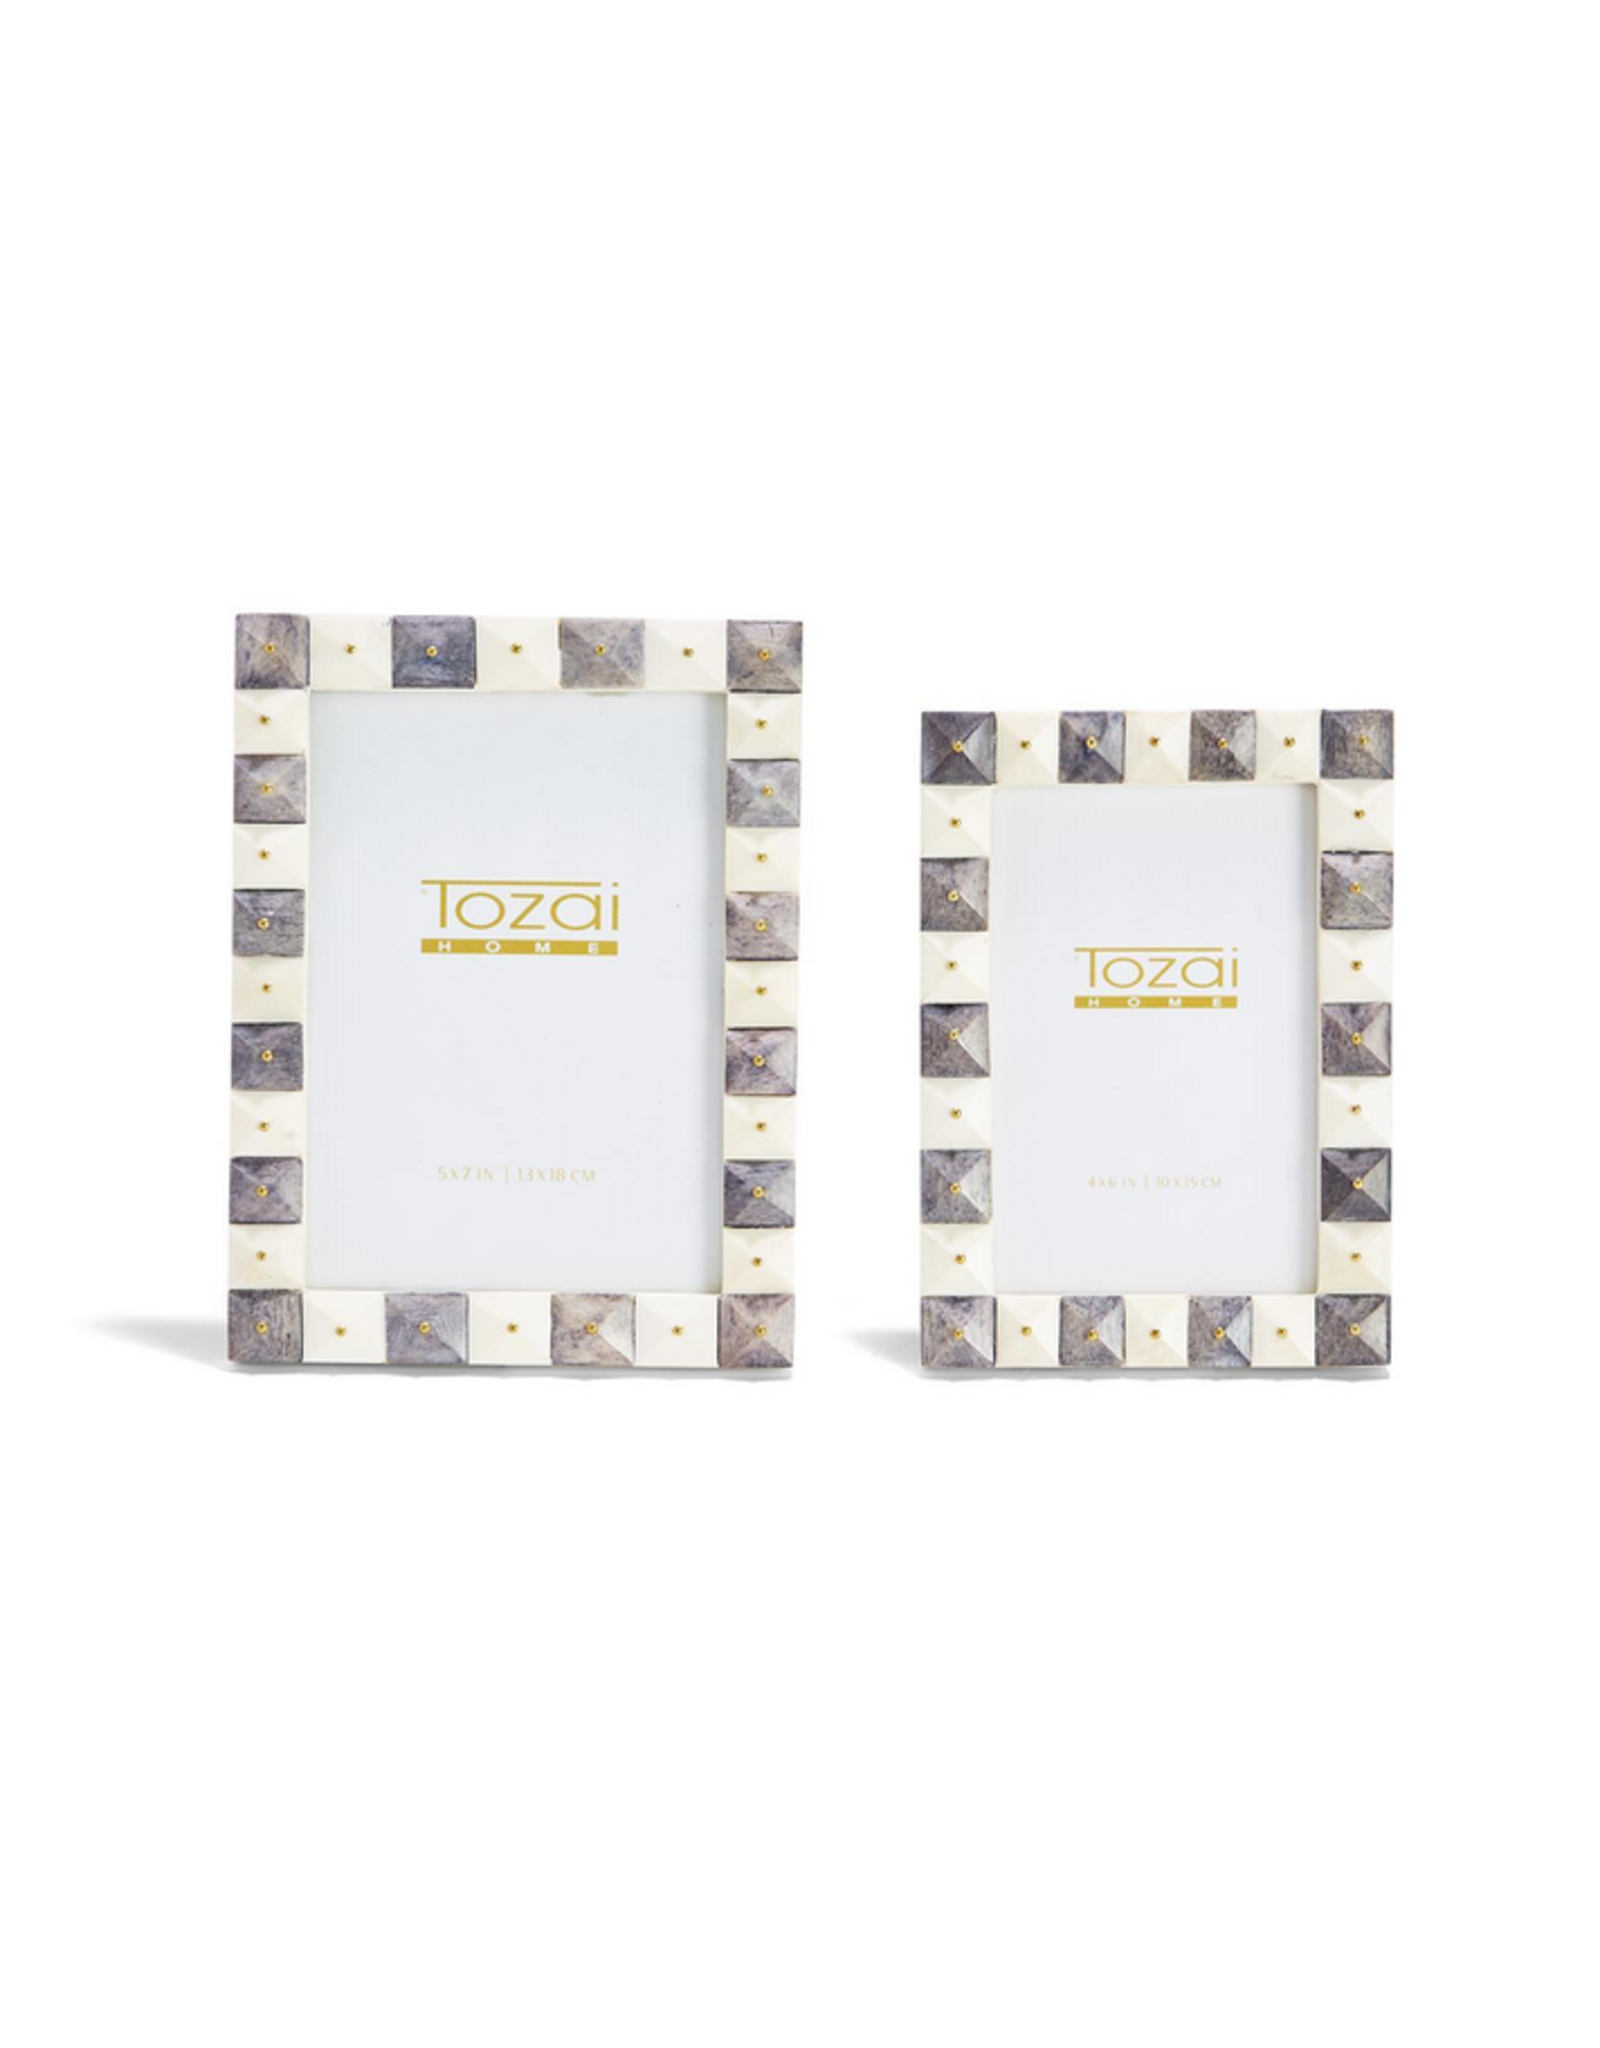 Pyramid Gray and White Frames with Gold Studs 4x6